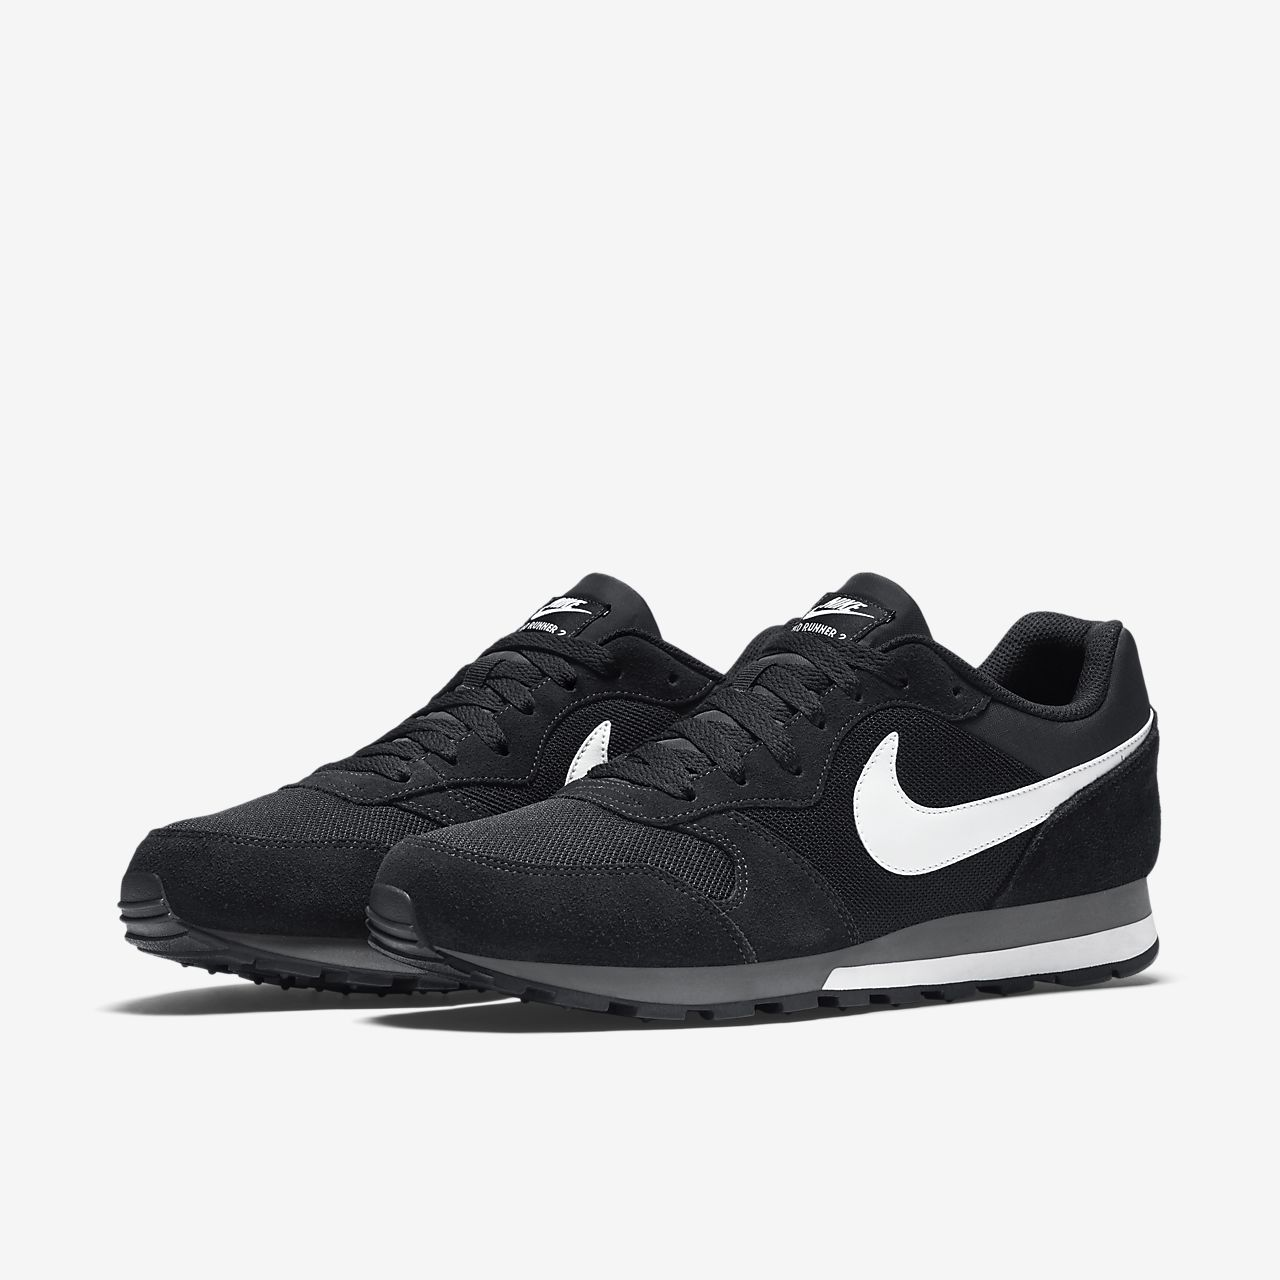 84fd3e9230a Nike MD Runner 2 Men s Shoe. Nike.com AU